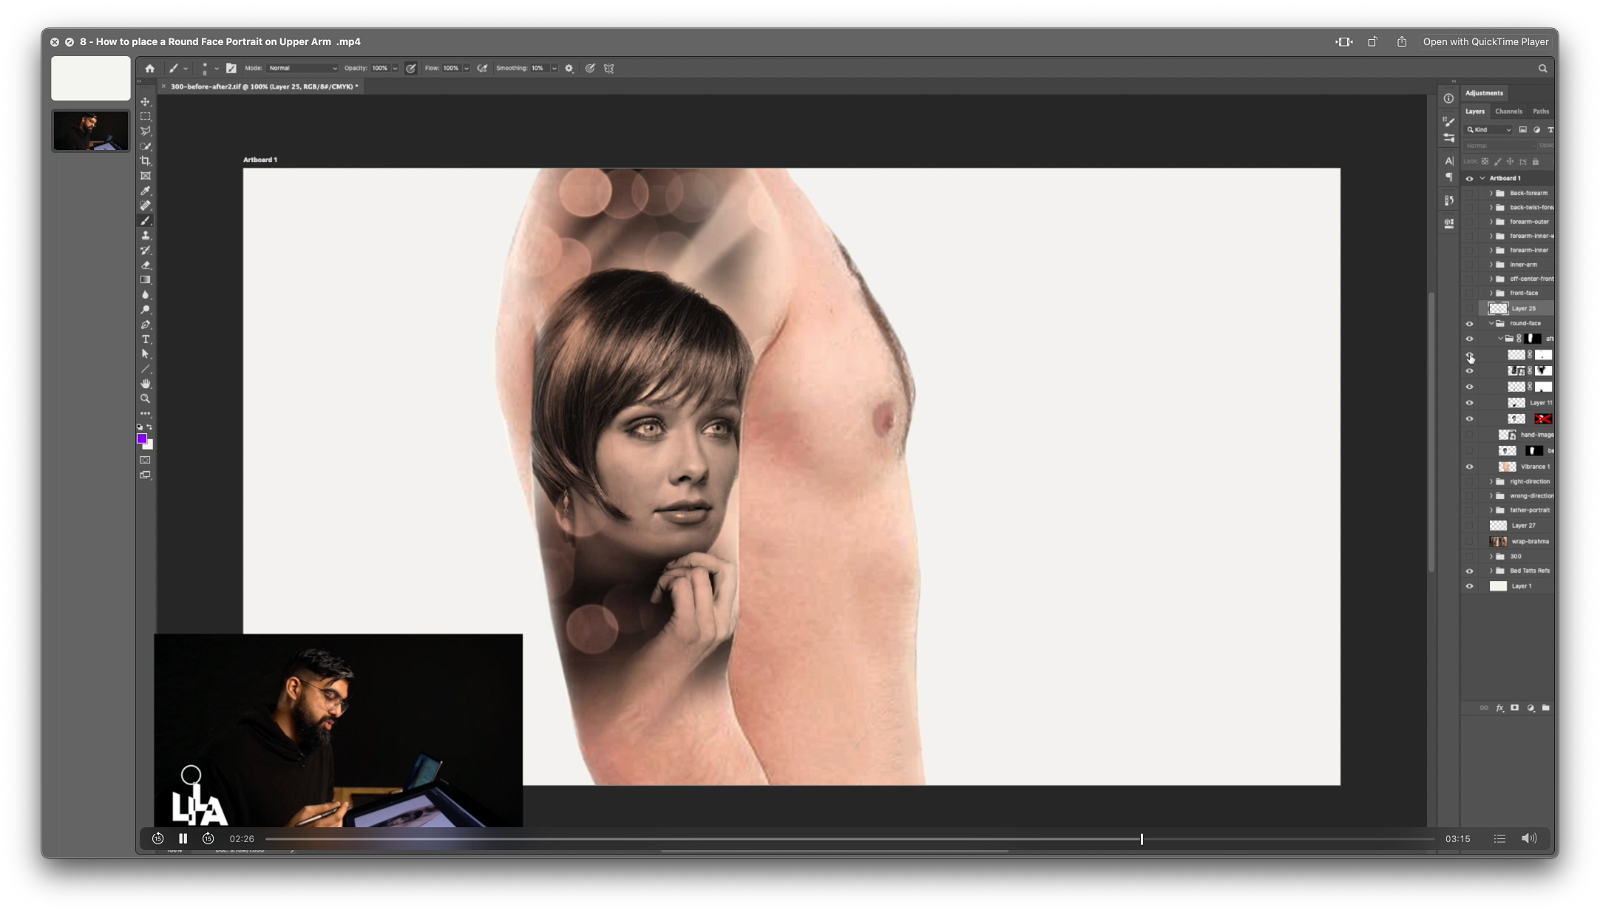 How to place a Round Face Portrait on Upper Arm